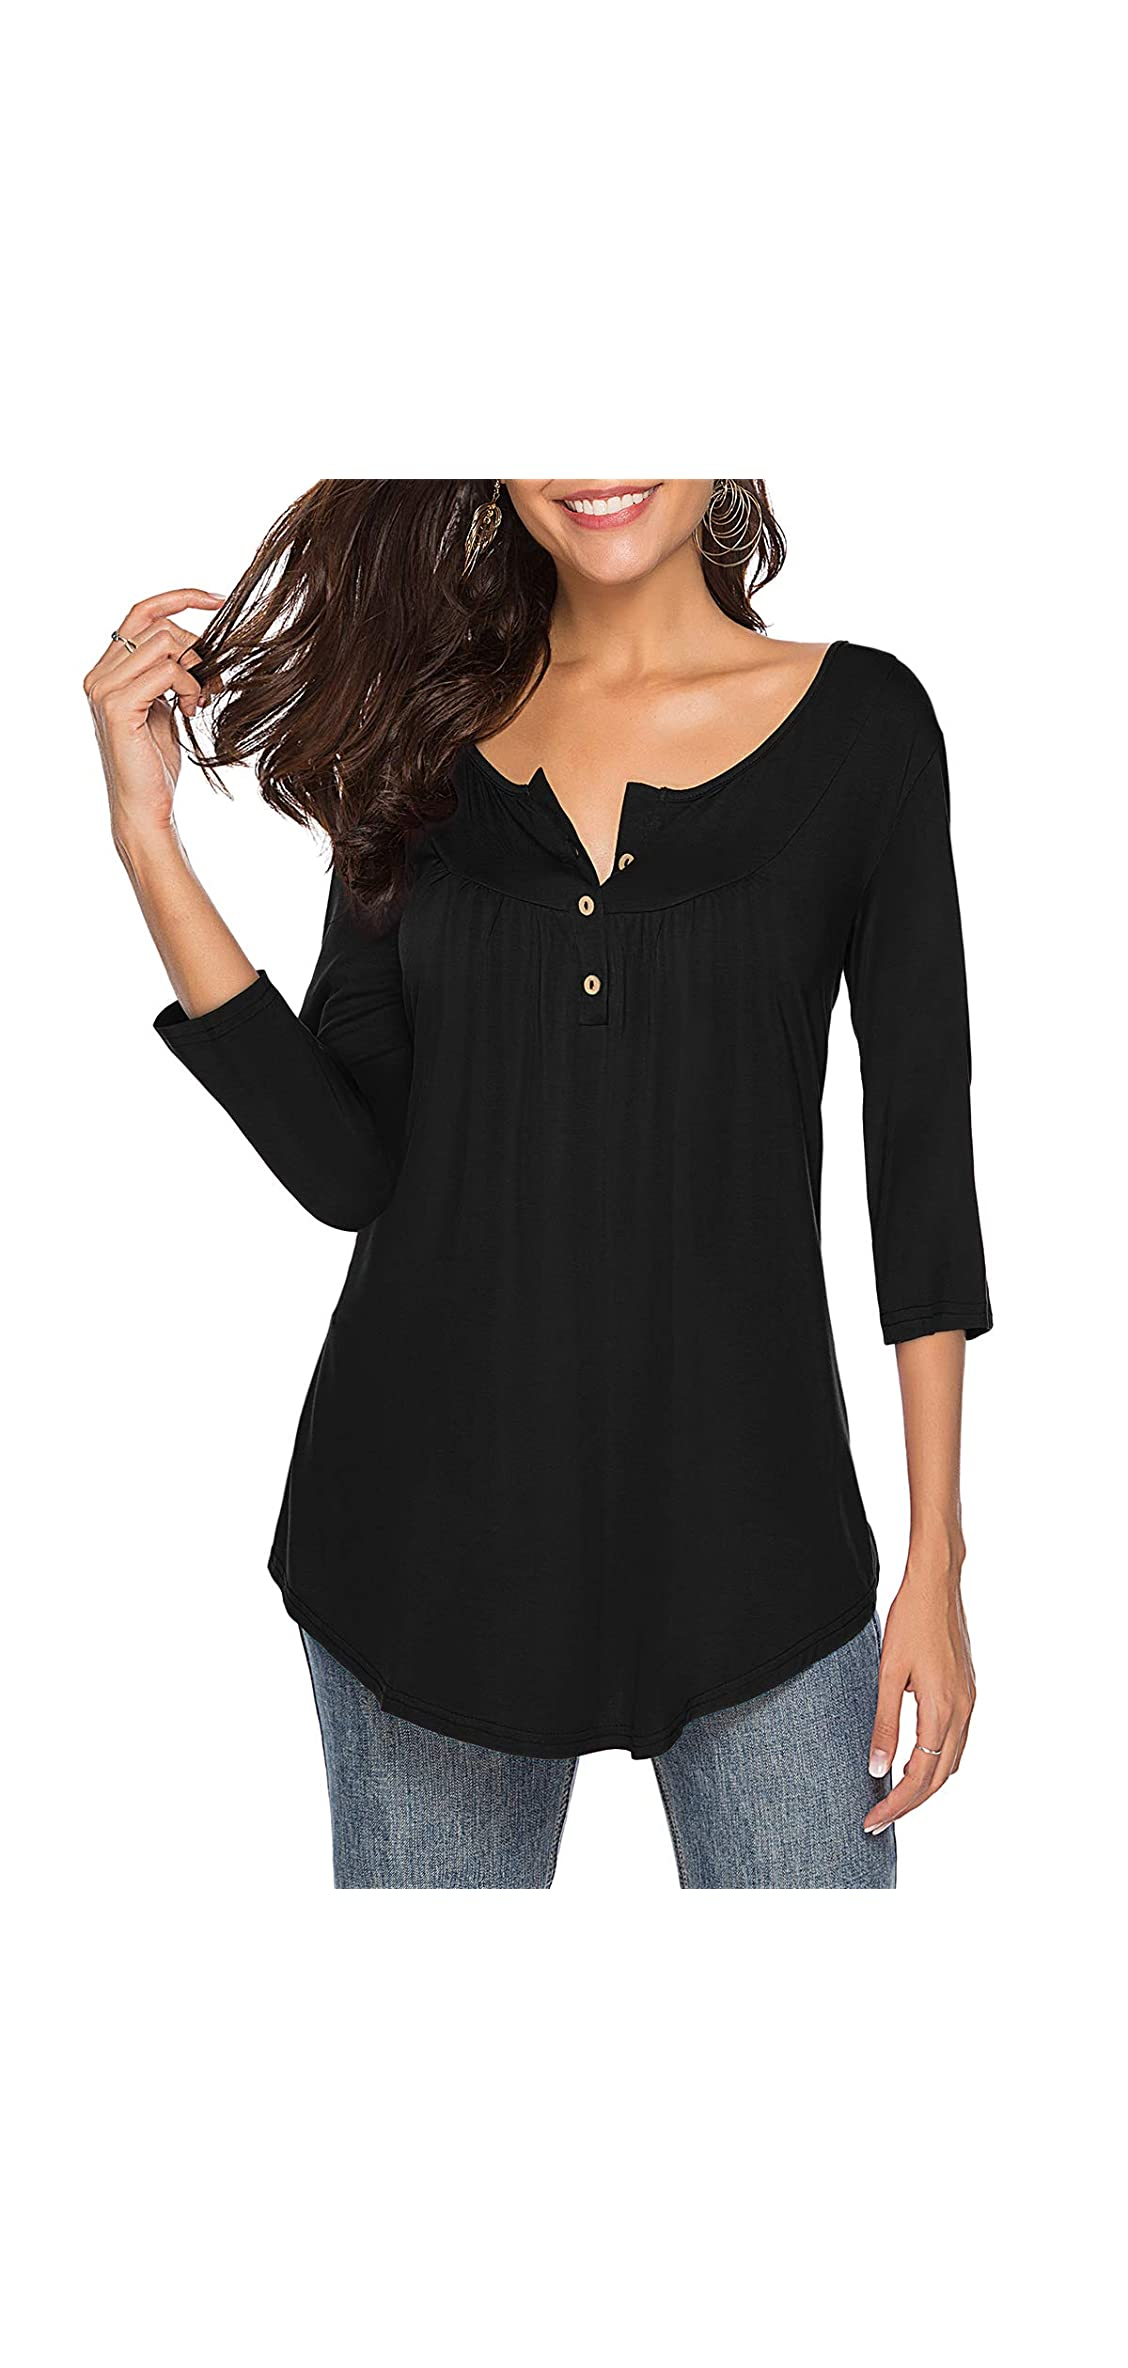 Womens Shirts Casual Tee V Neck / Sleeve Button Up Fits